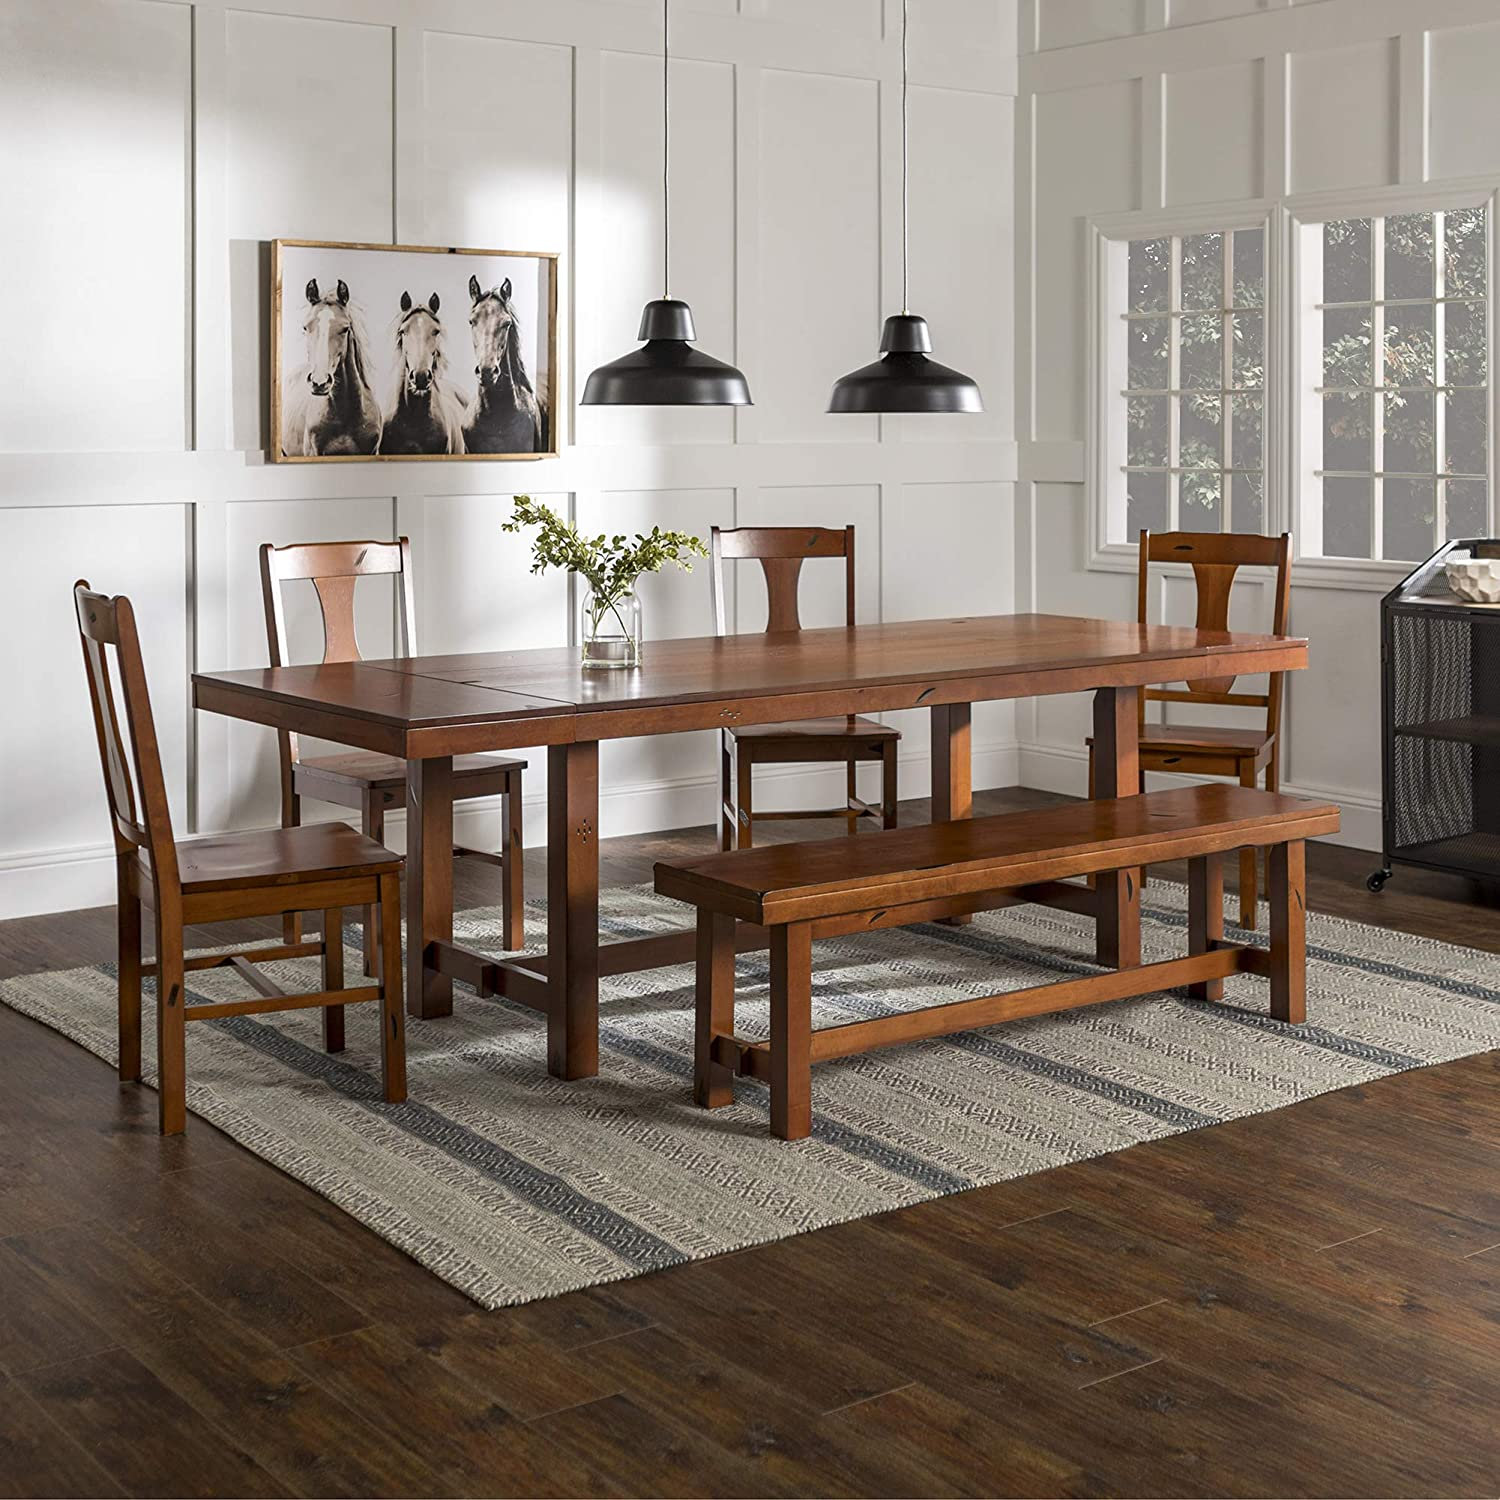 WE Furniture Rustic Farmhouse Rectangle Wood Dining Room Table Set with Leaf Extension, Brown Oak